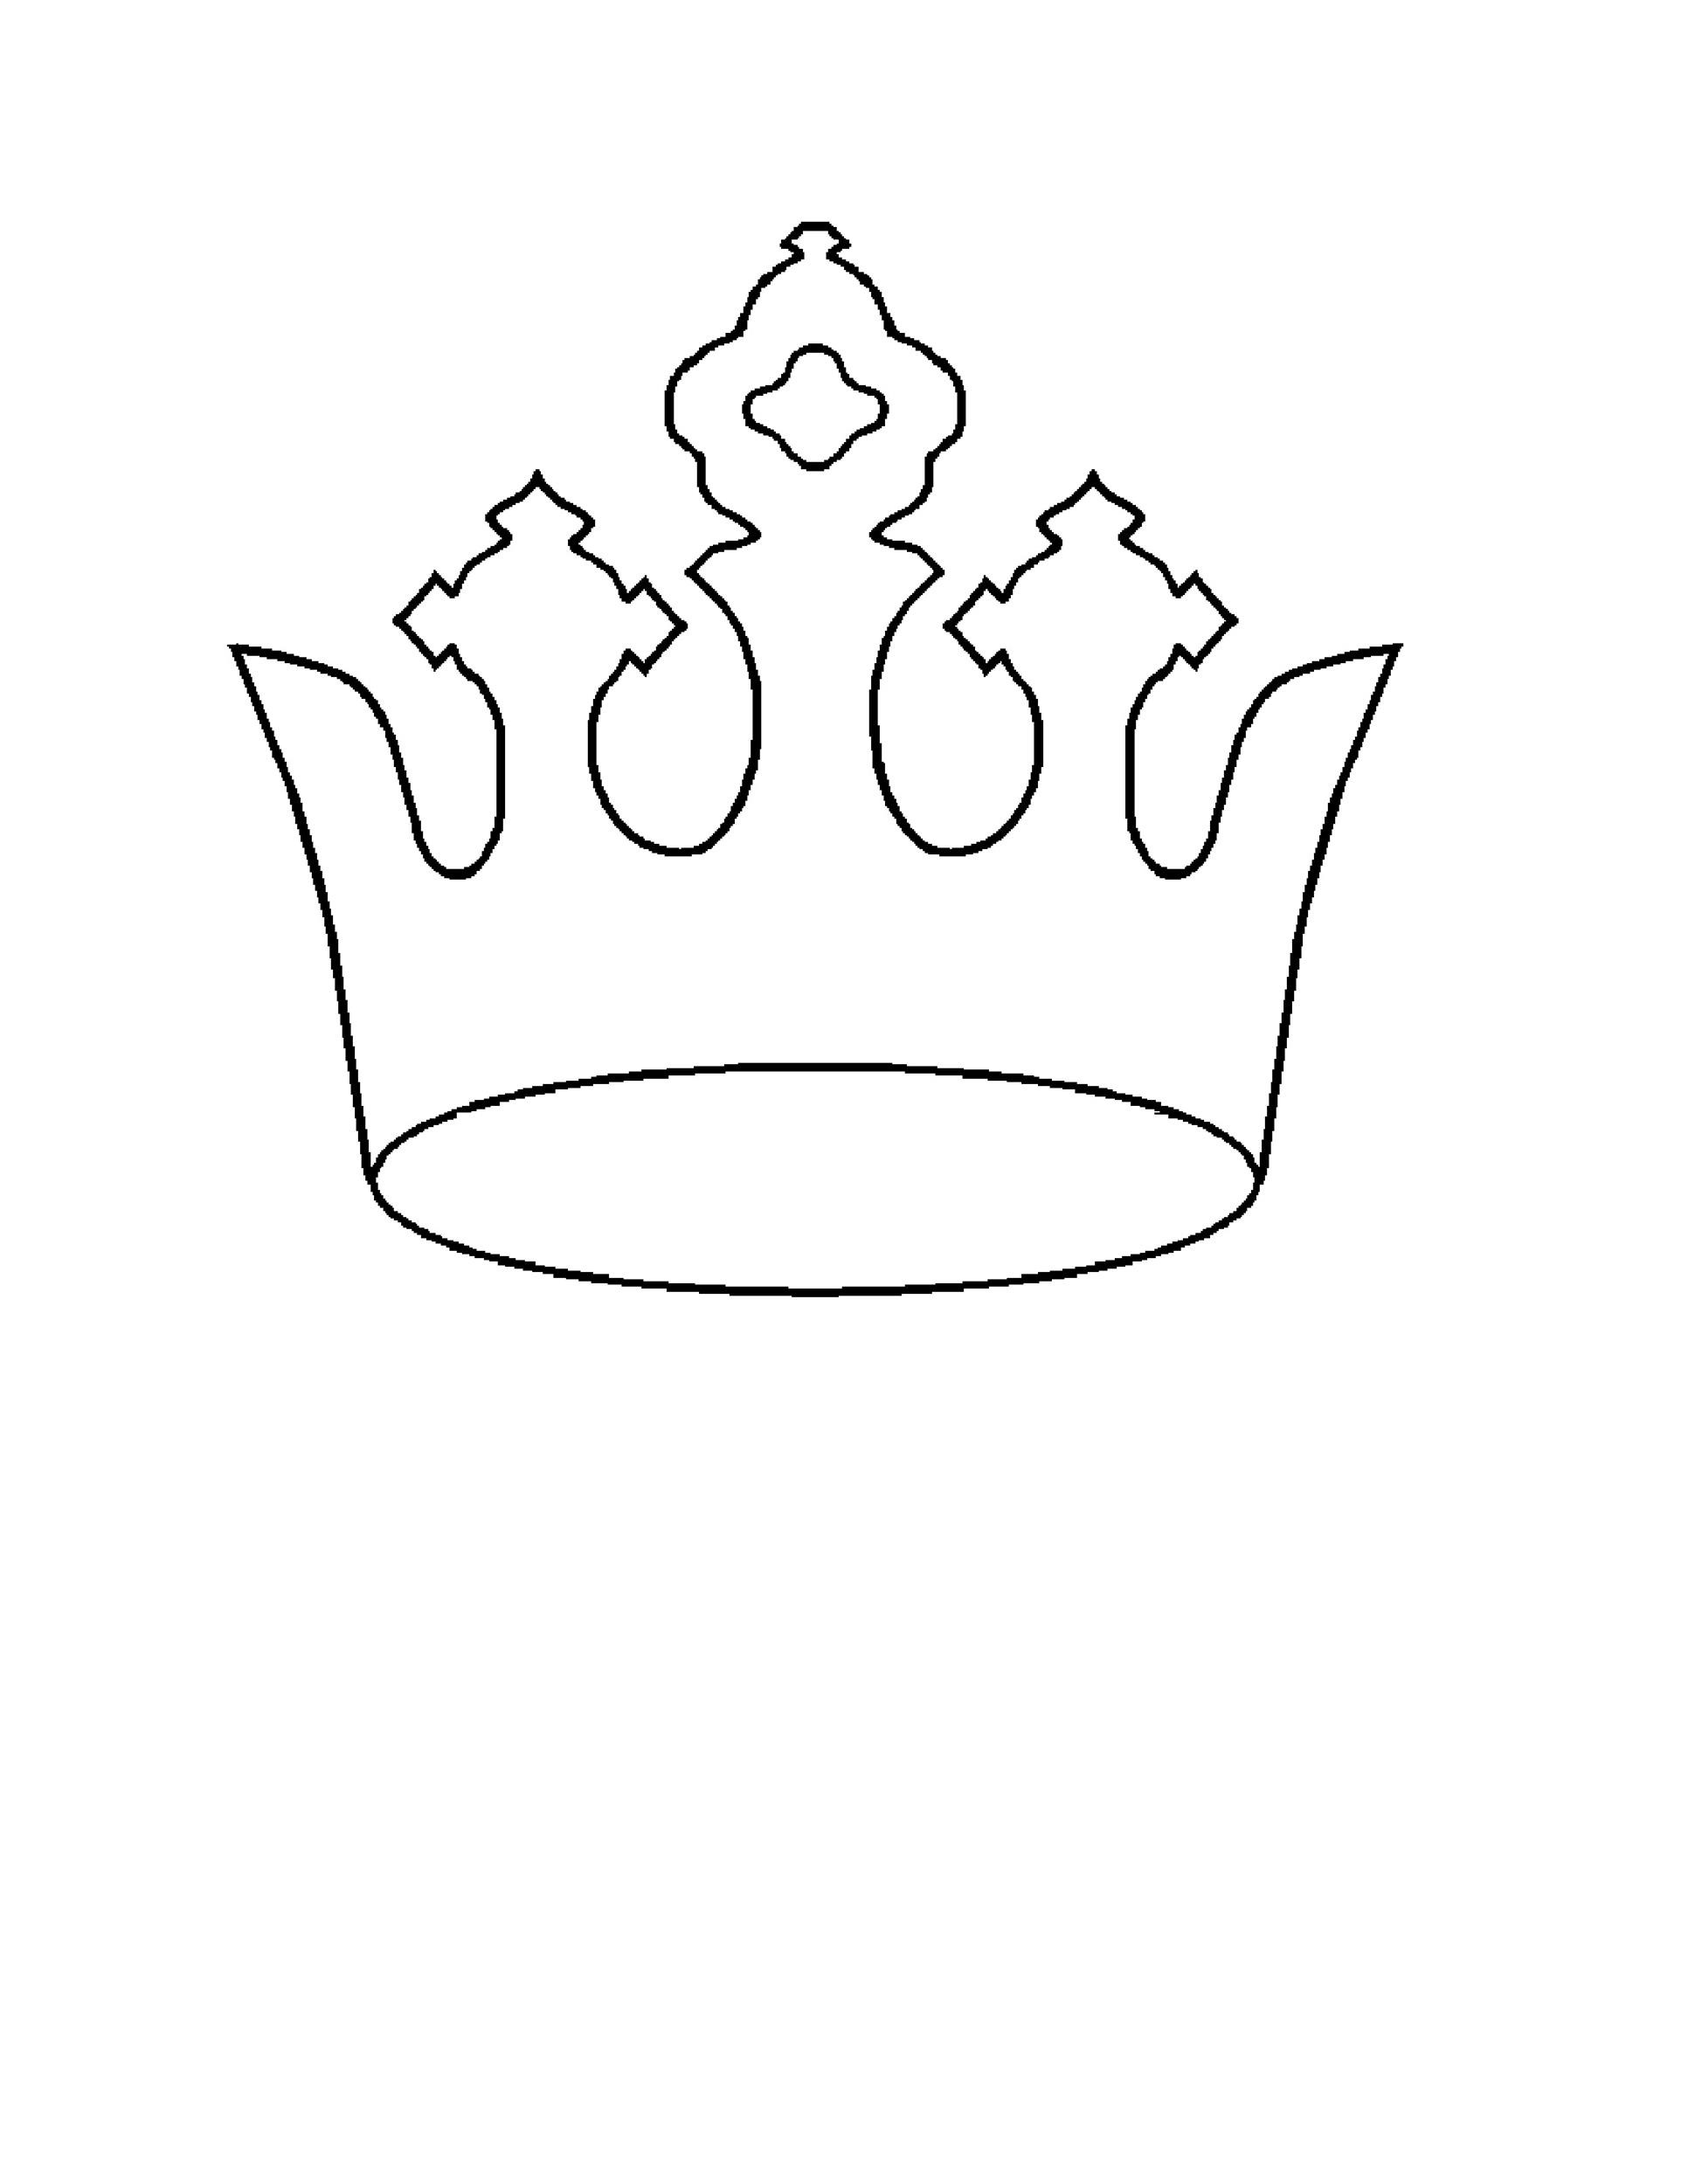 graphic regarding Crown Stencil Printable identify 45 Cost-free Paper Crown Templates ᐅ Template Lab